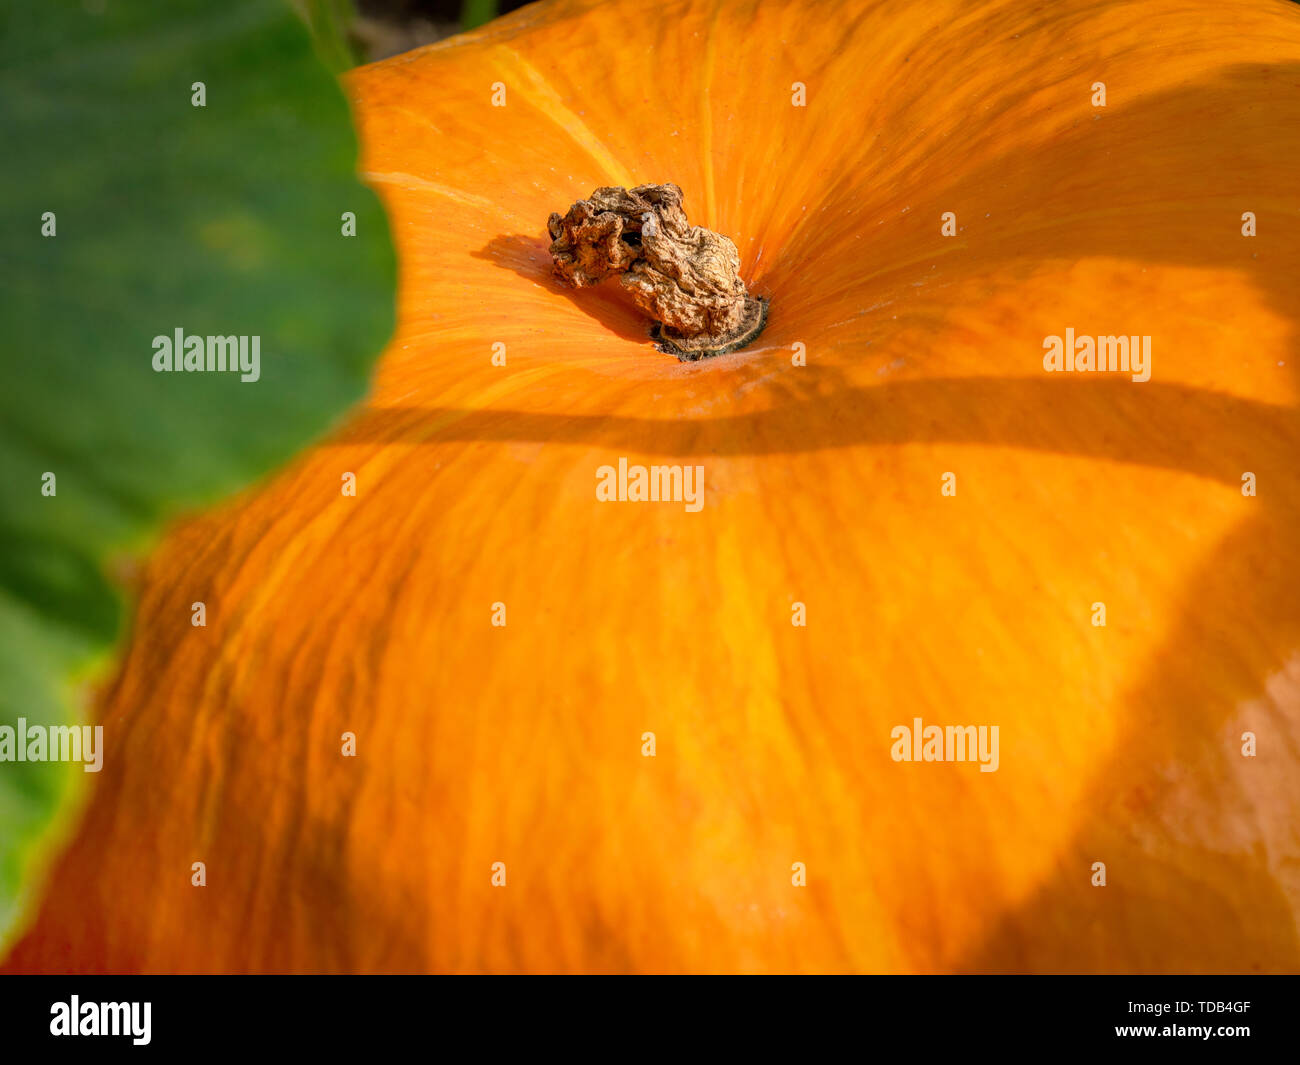 Big orange pumpkins growing in the garden. - Stock Image